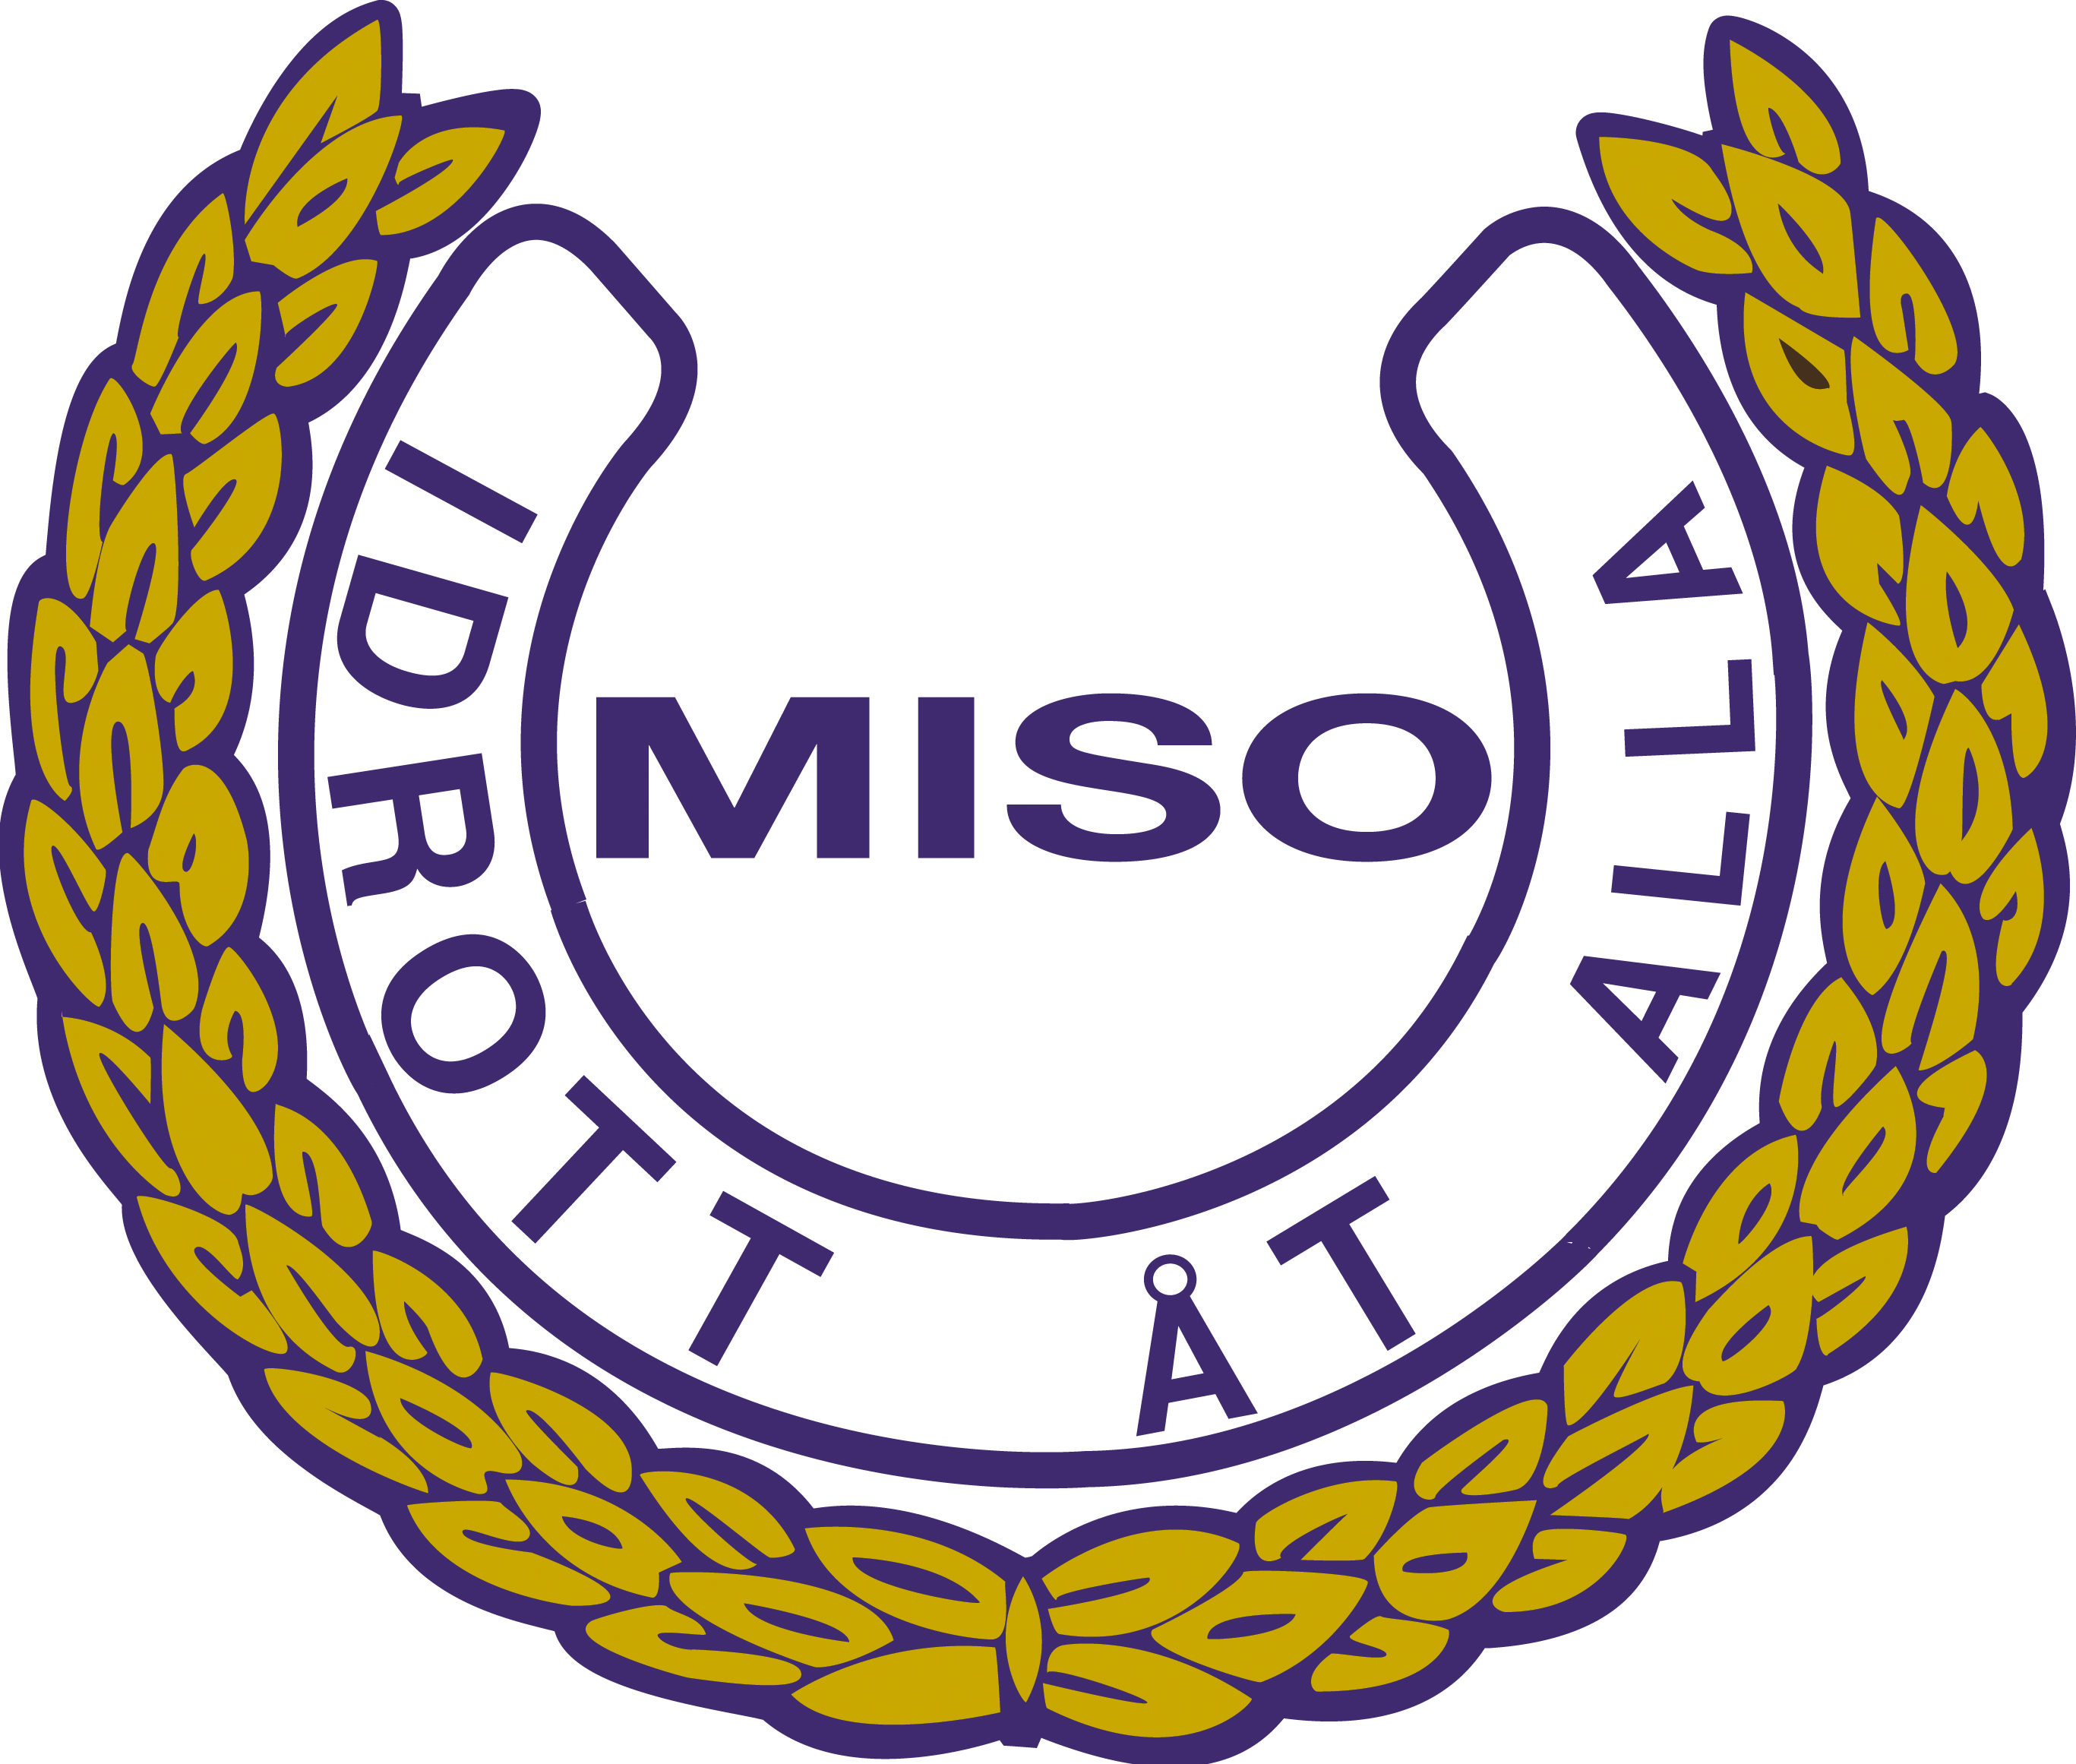 image of the organisation